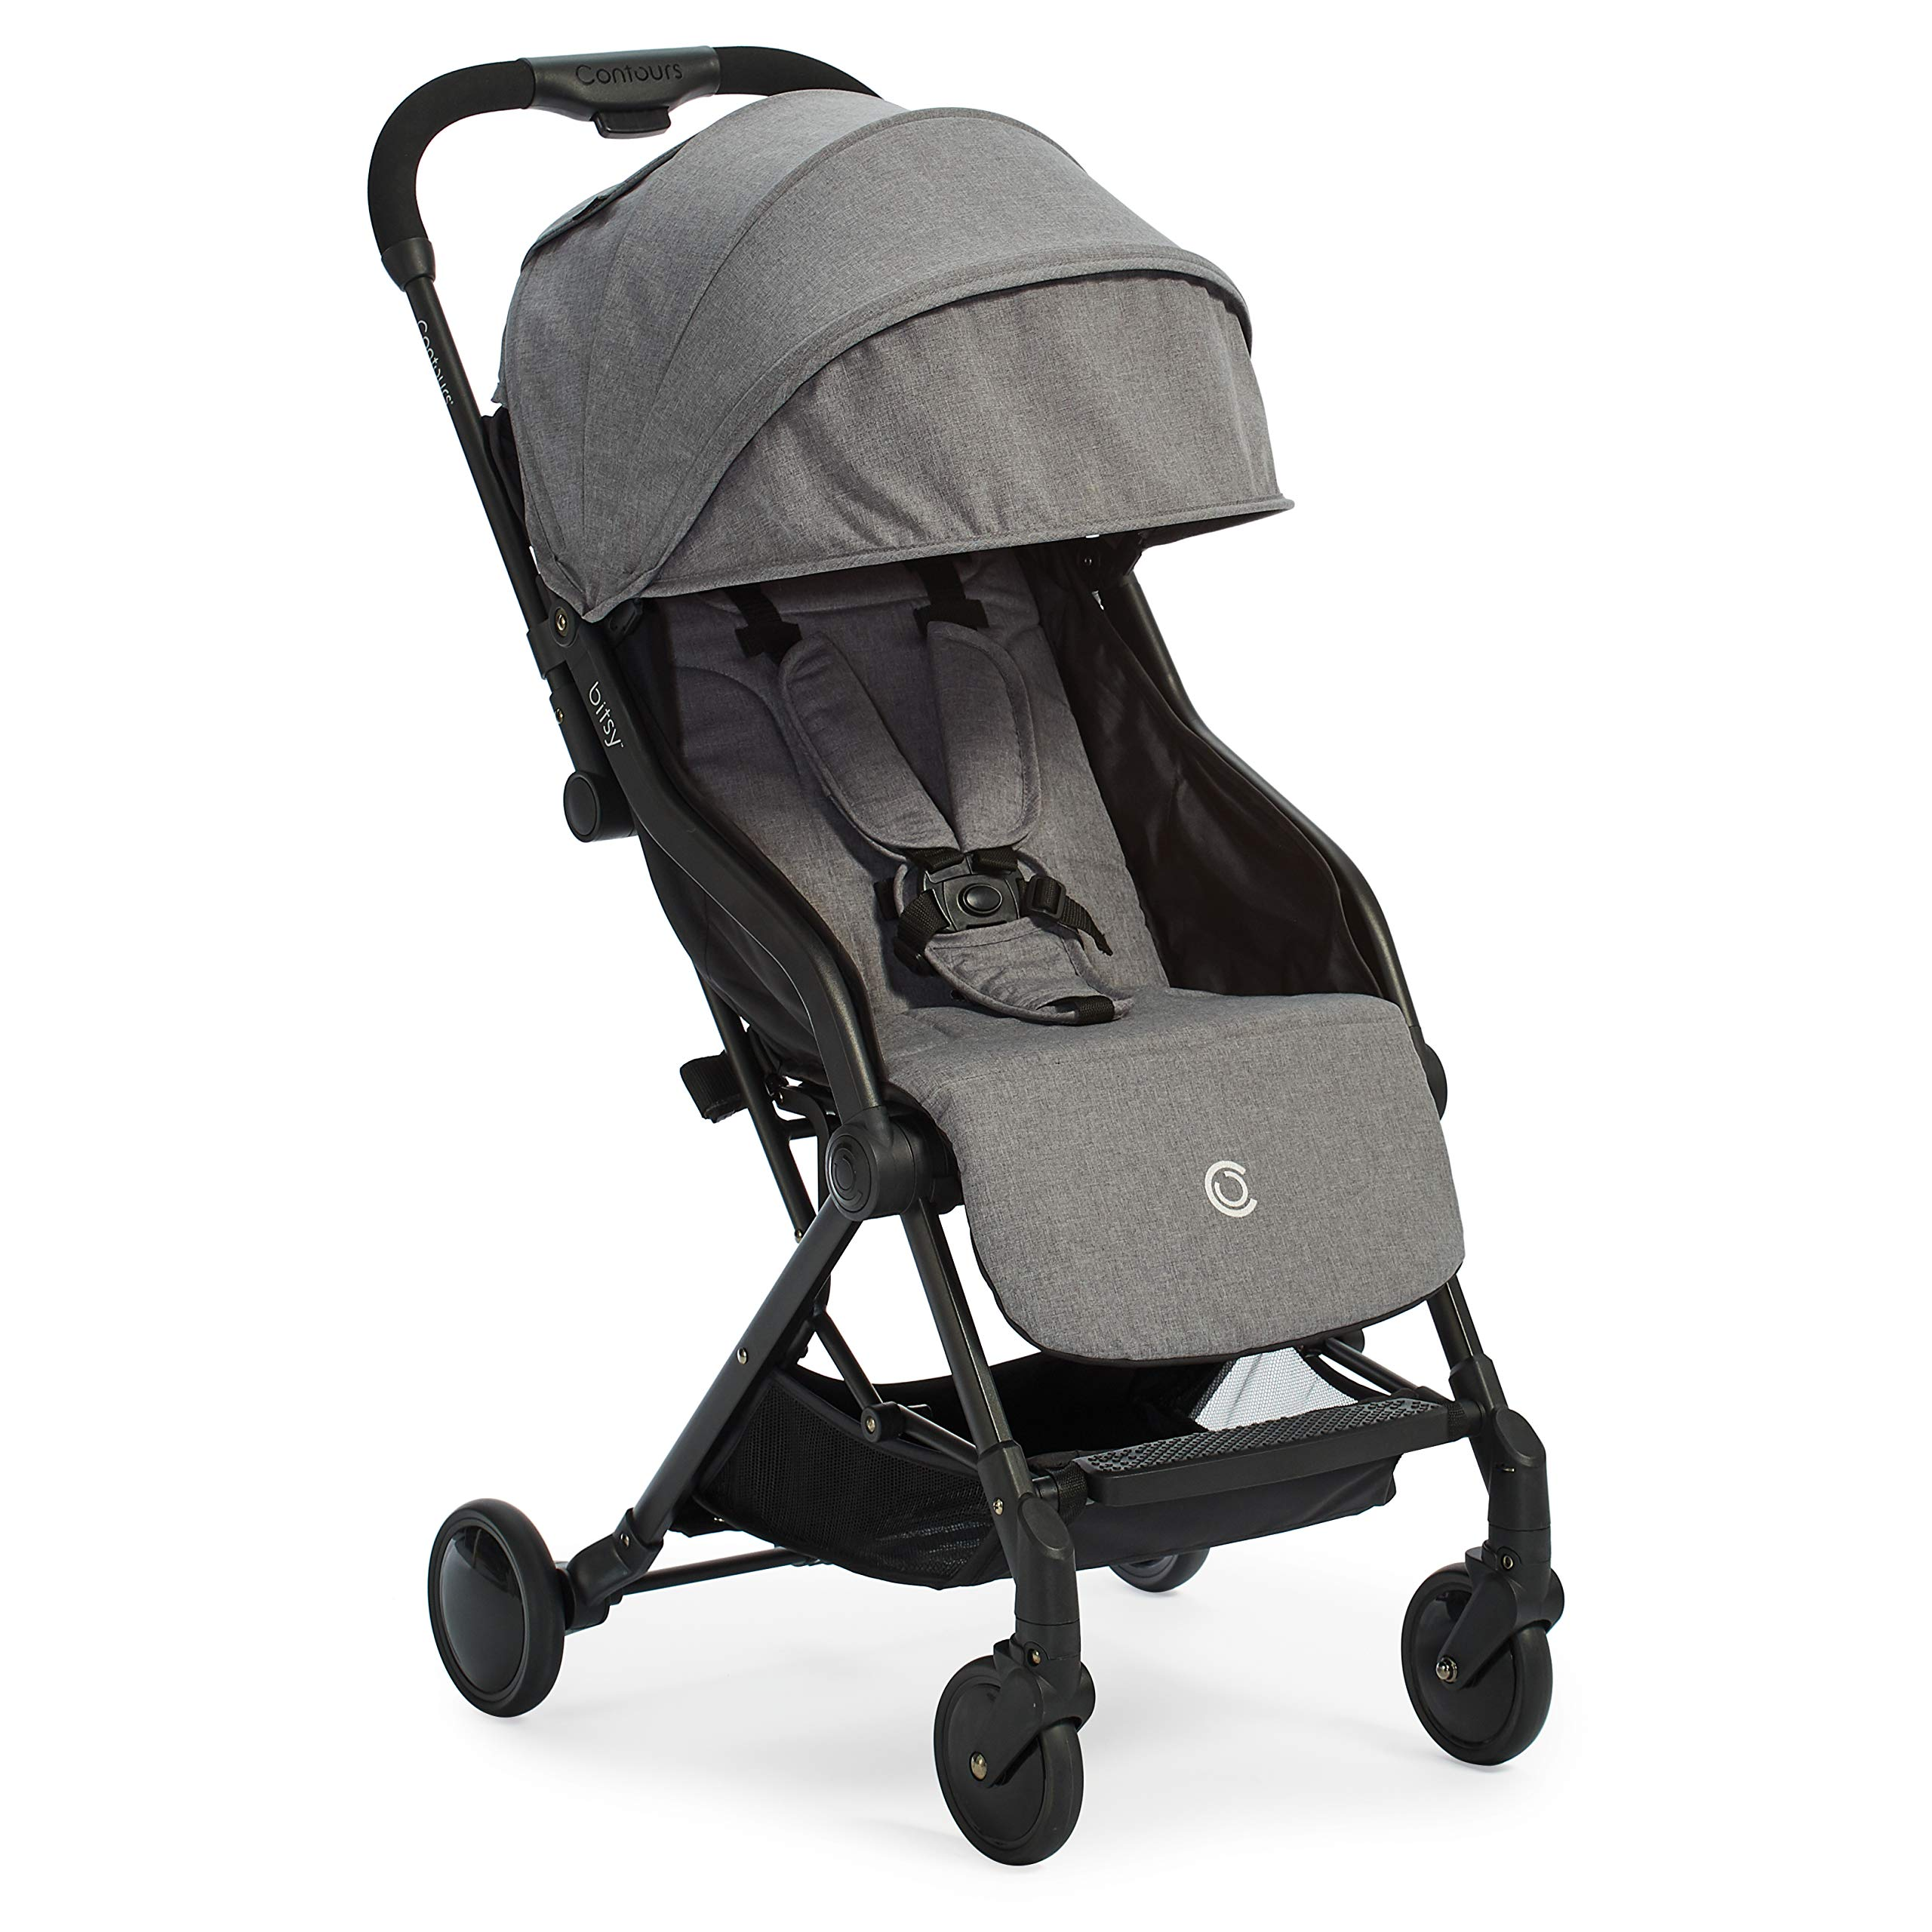 Contours Bitsy Compact Fold Lightweight Stroller for Travel, Airplane Friendly, Adapter-Free Car Seat Compatibility, Granite Grey